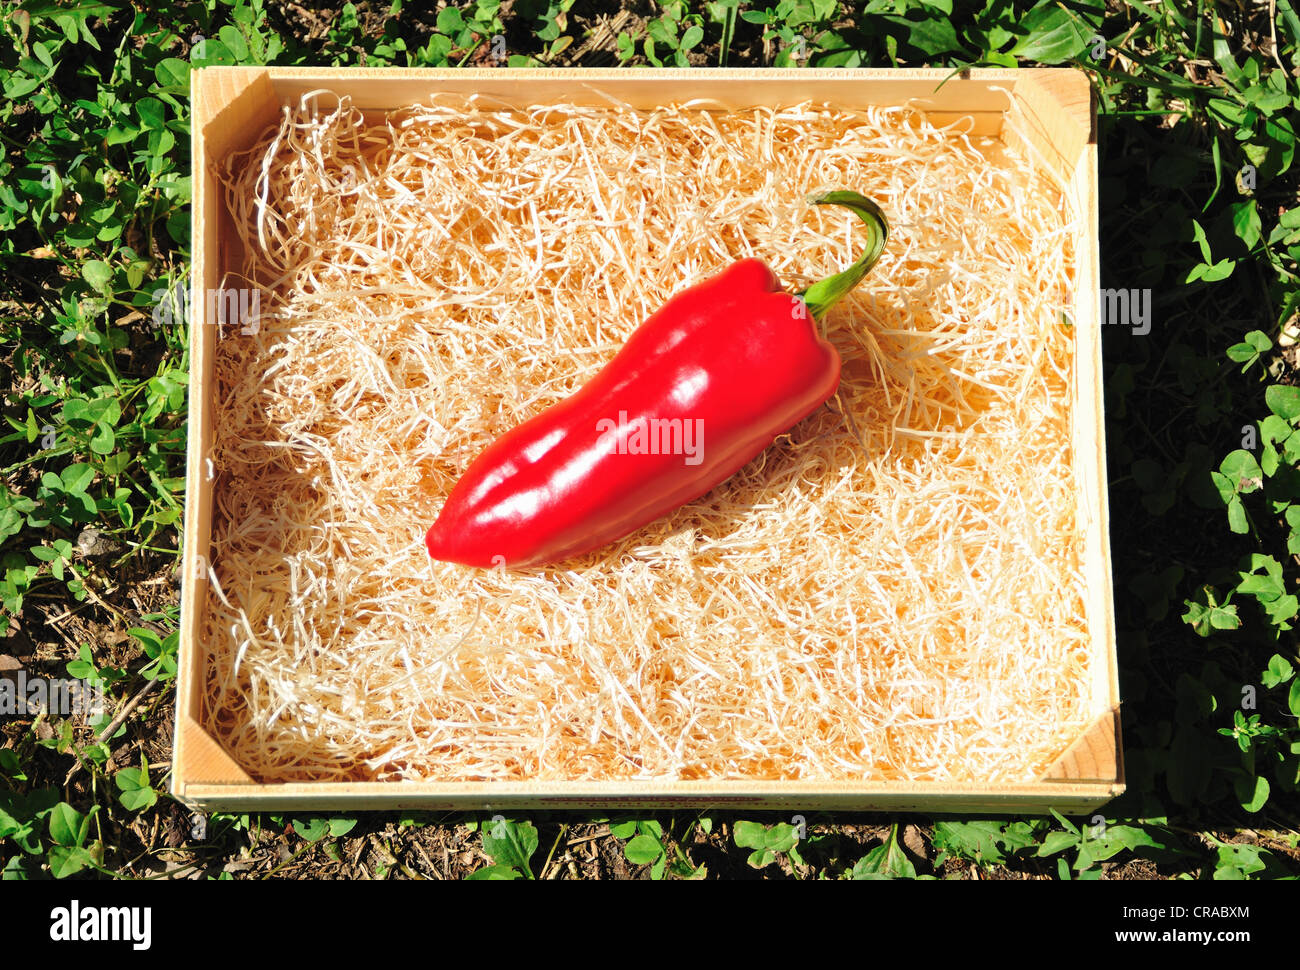 Close up of chili pepper in wooden box - Stock Image